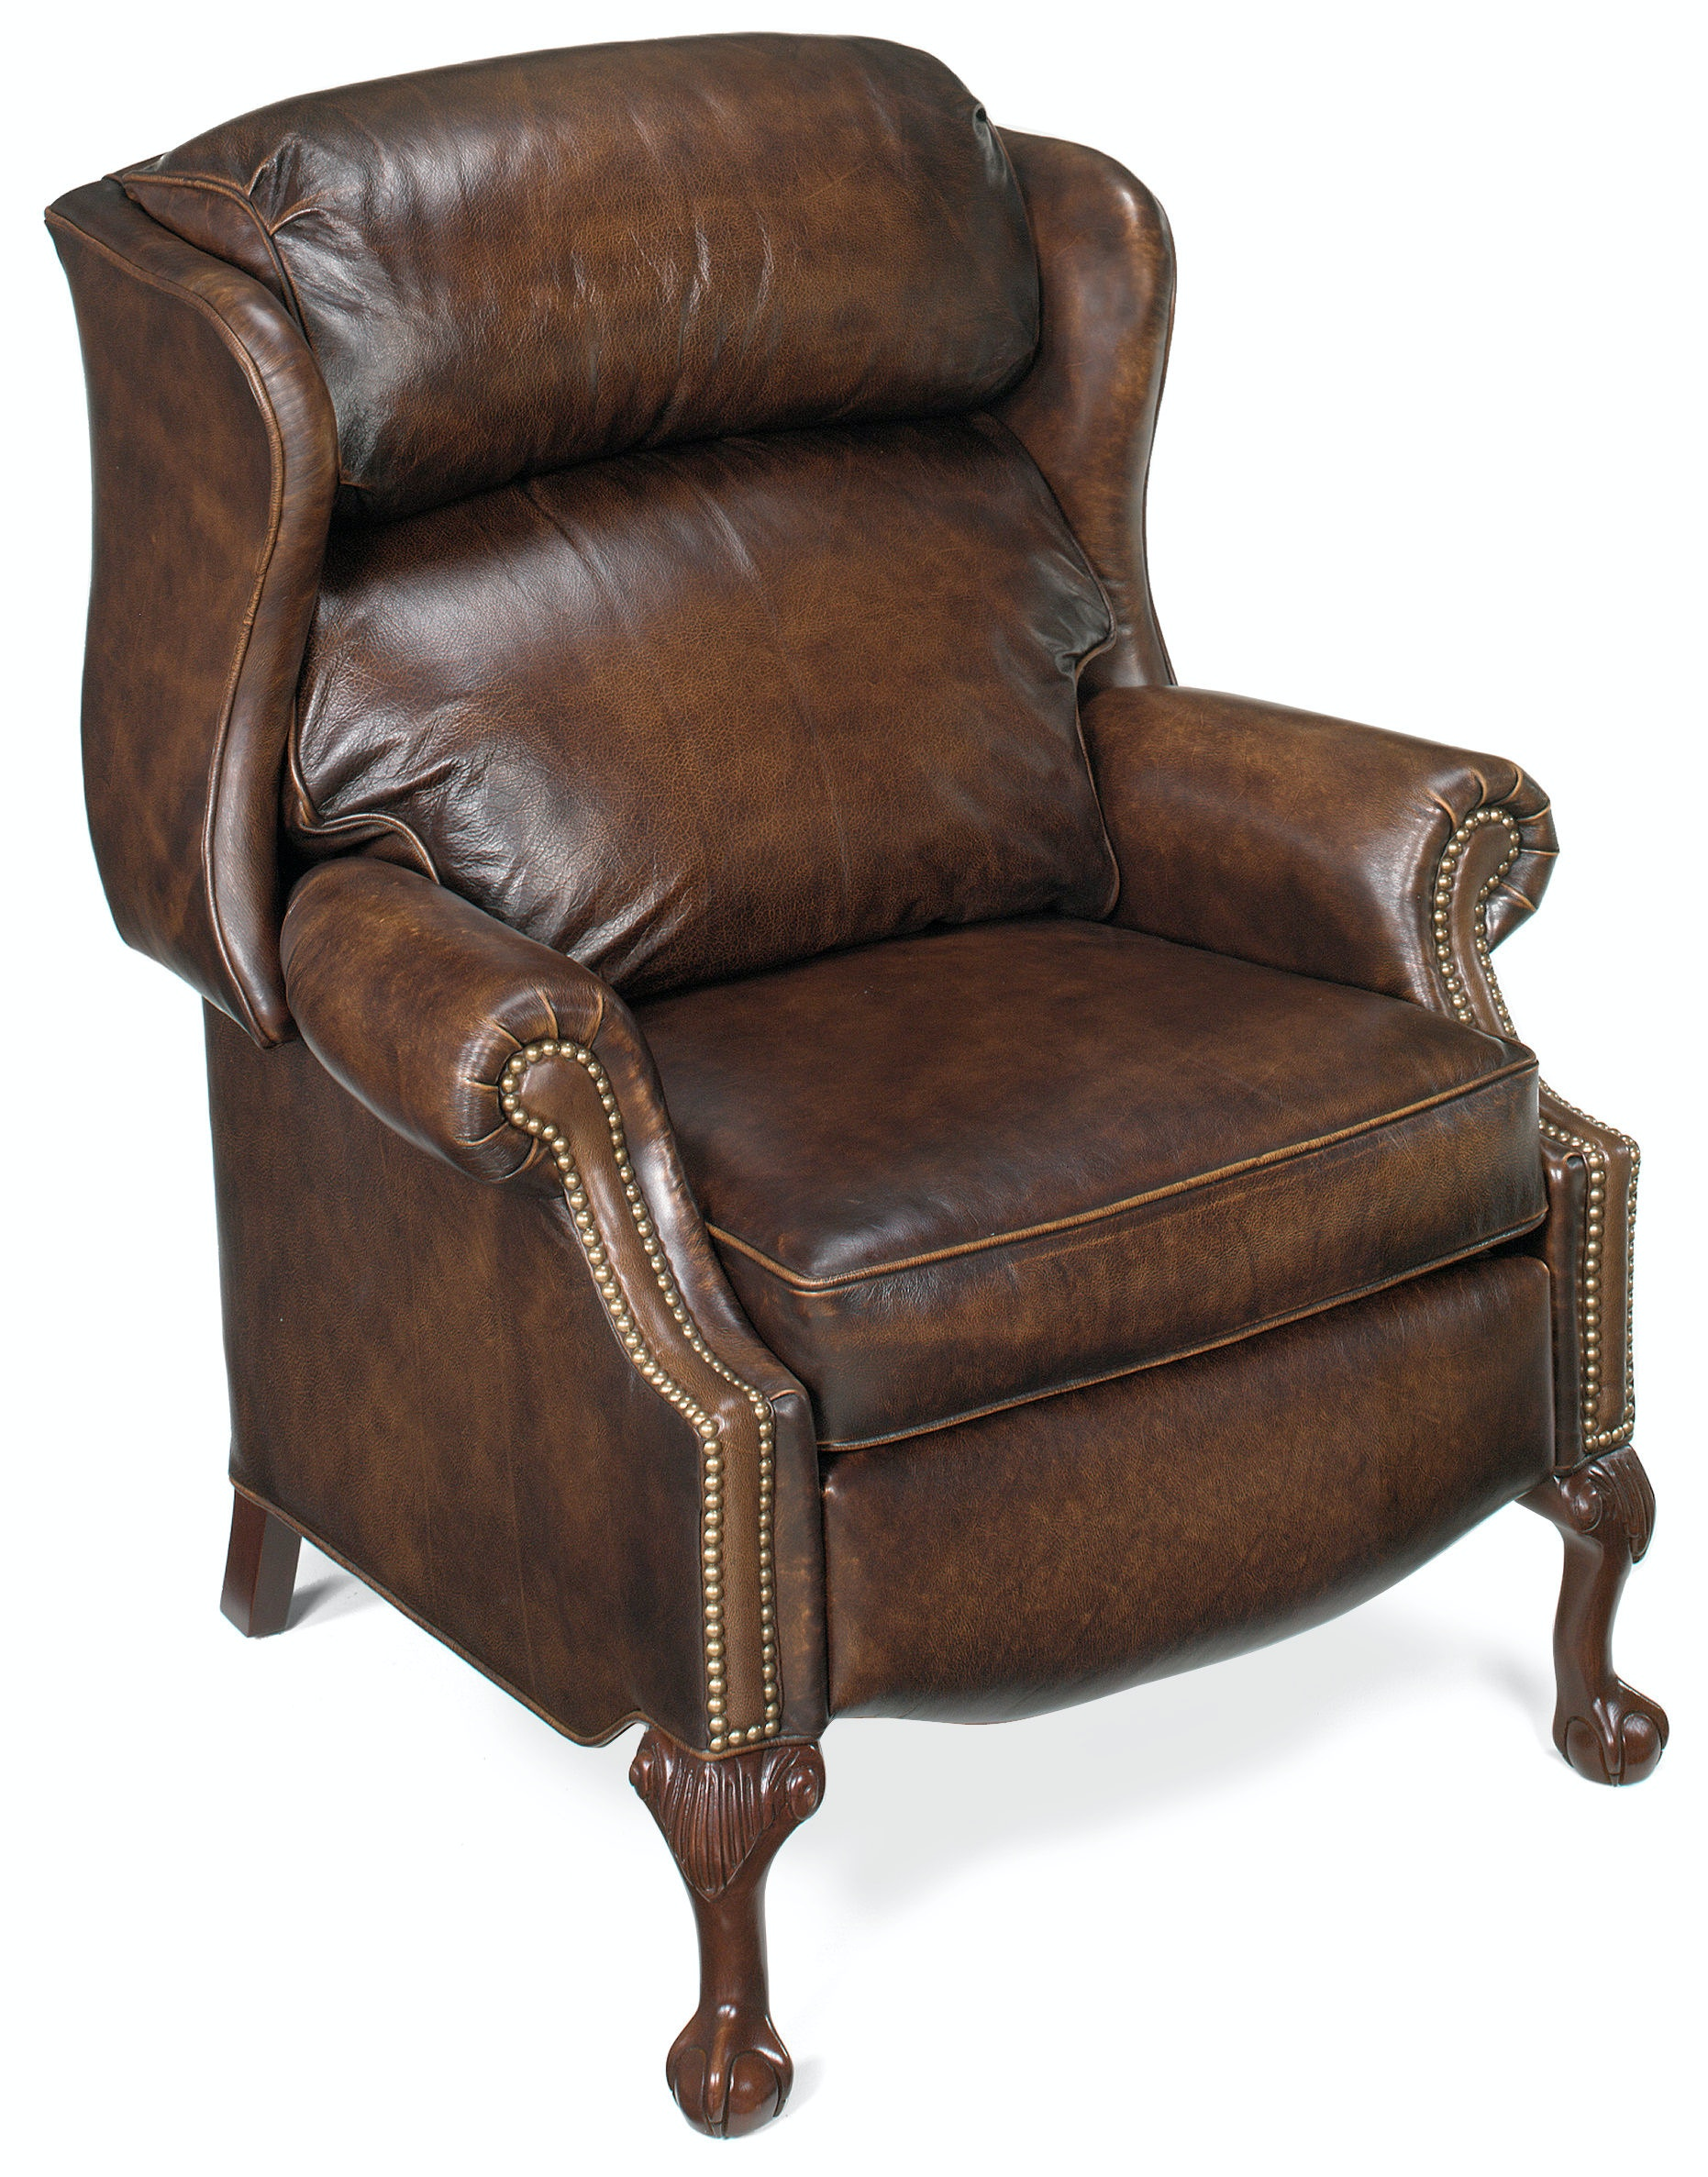 Bradington Young Leather Recliner 4115 Maxwell Bradington Young Furniture Leather Chair Recliner Maxwell 4115 4115